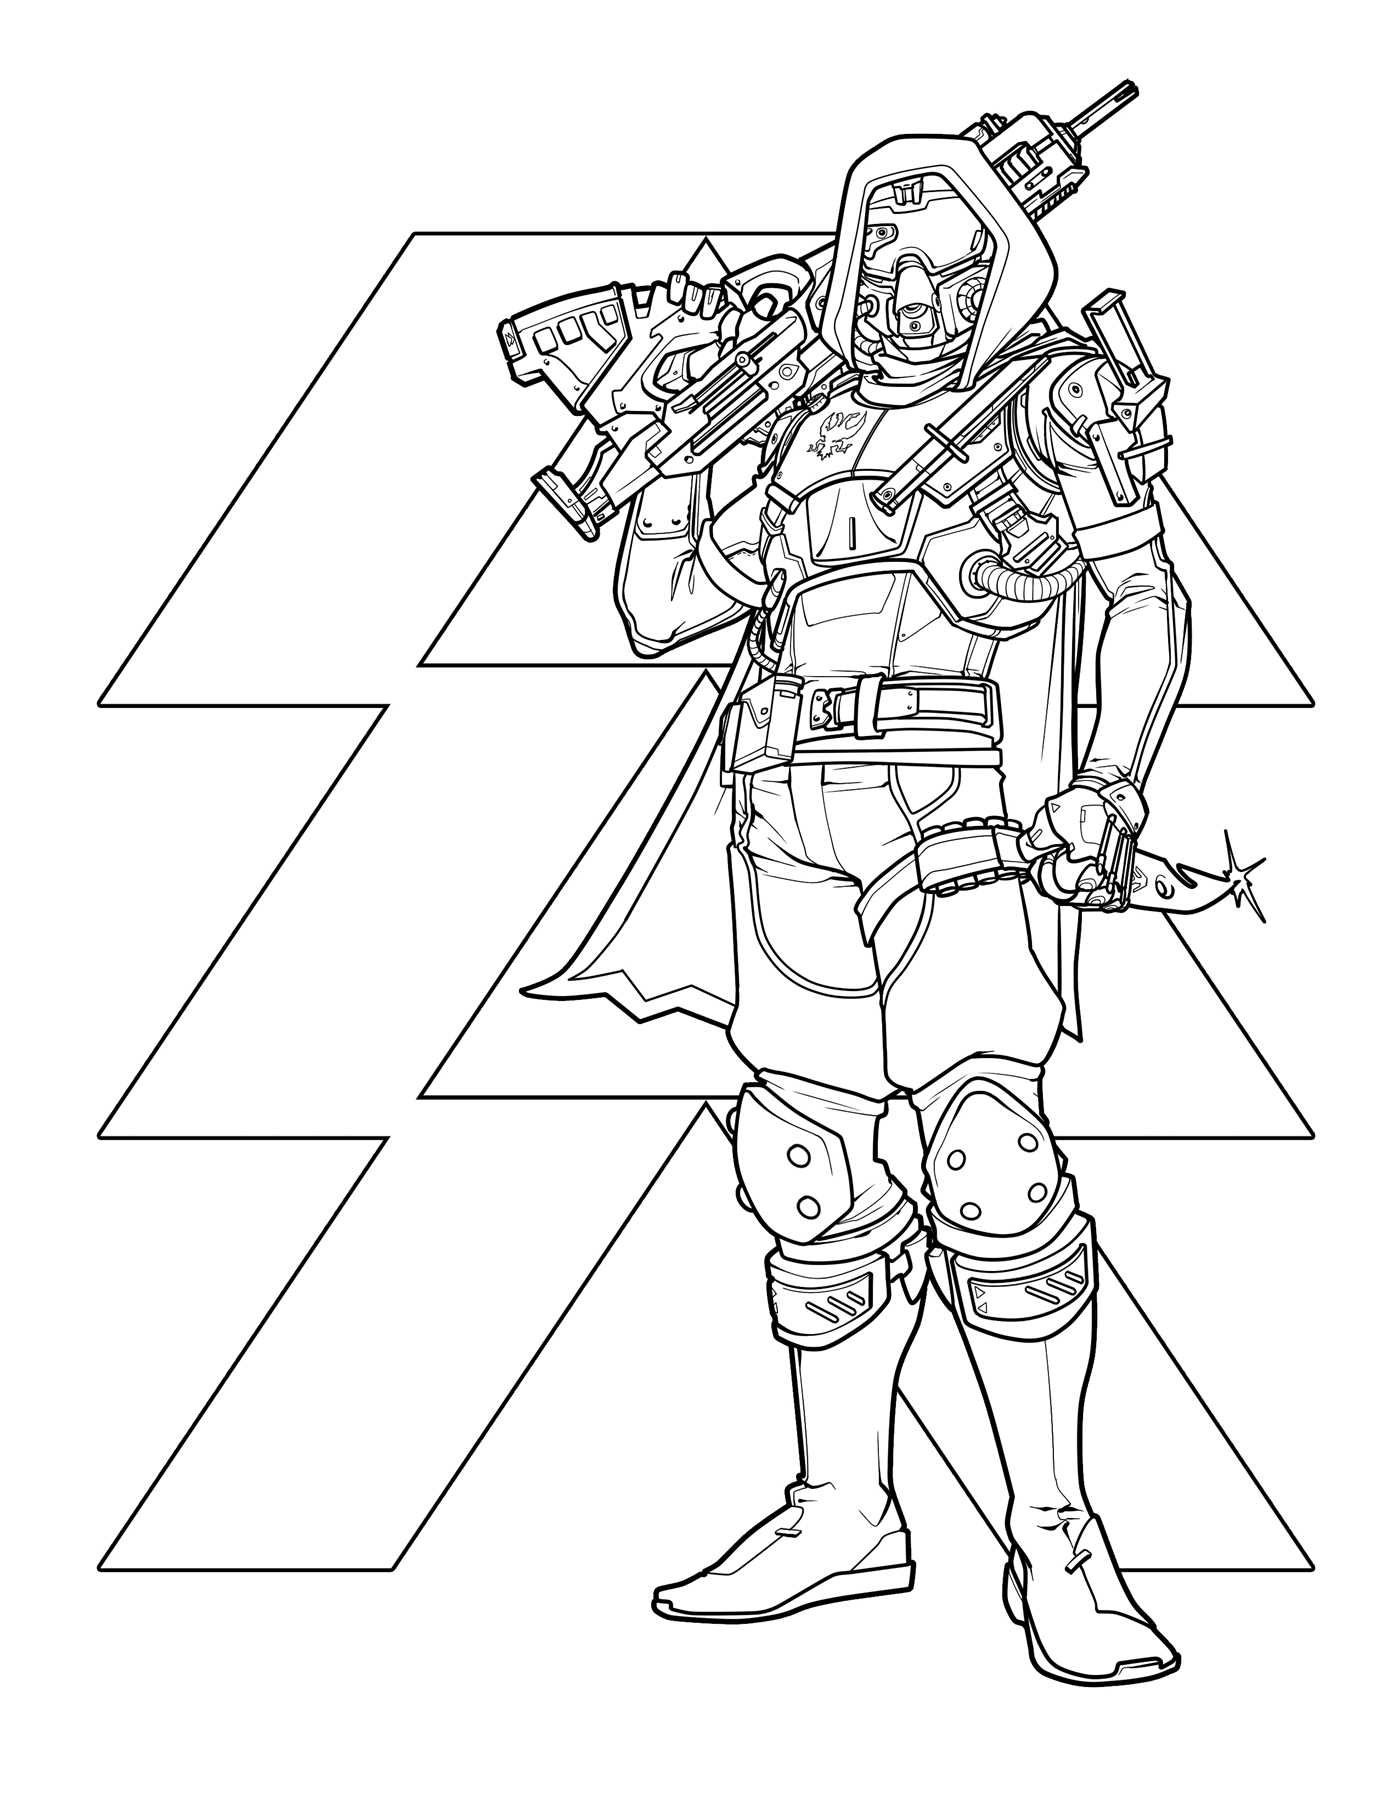 1399x1811 Destiny The Official Coloring Book Bungie, Ze Carlos